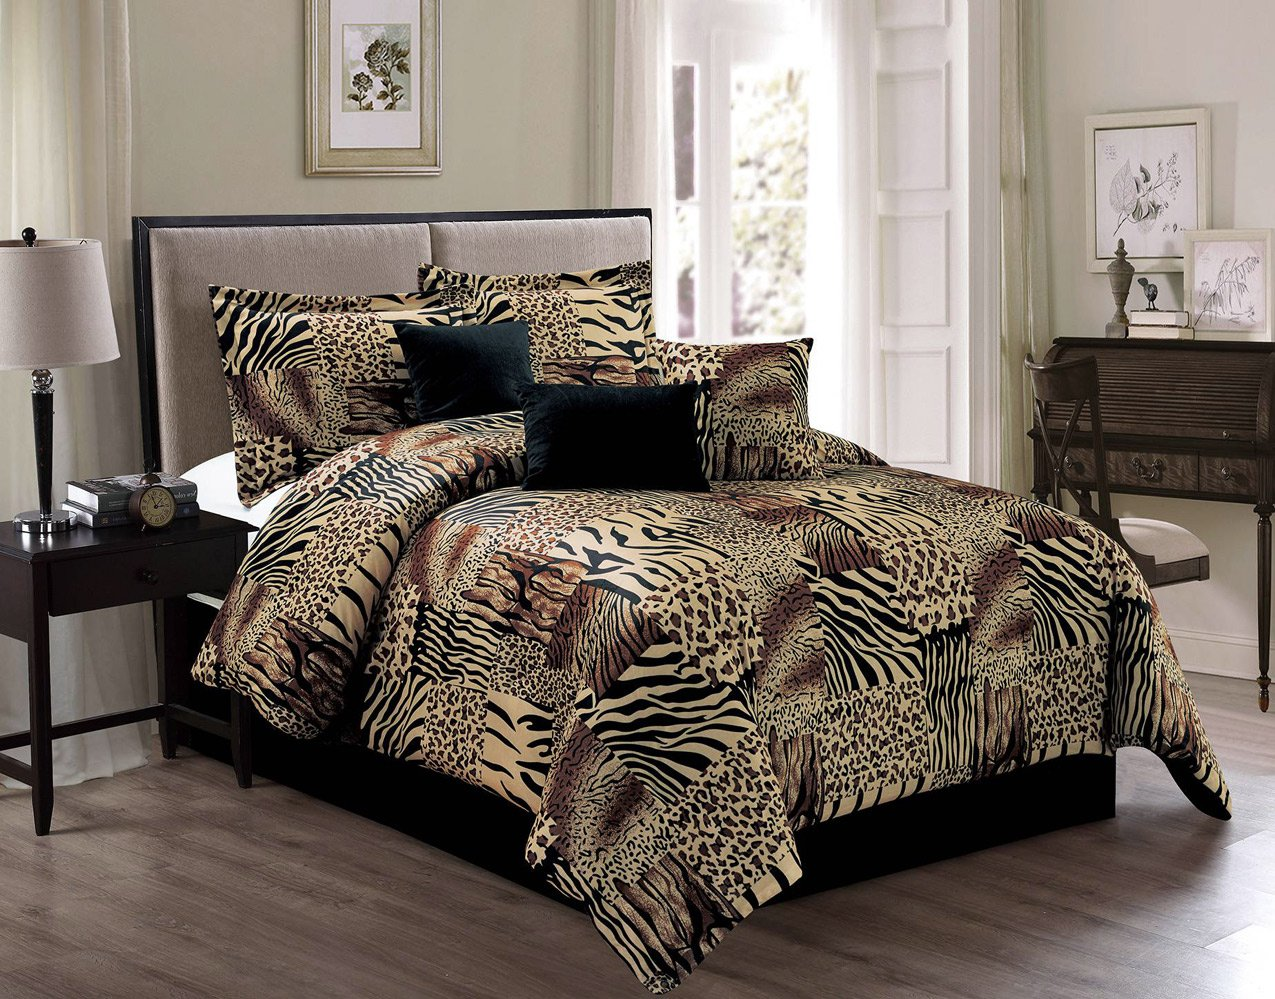 7 Pieces Multi Animal print Comforter set KING